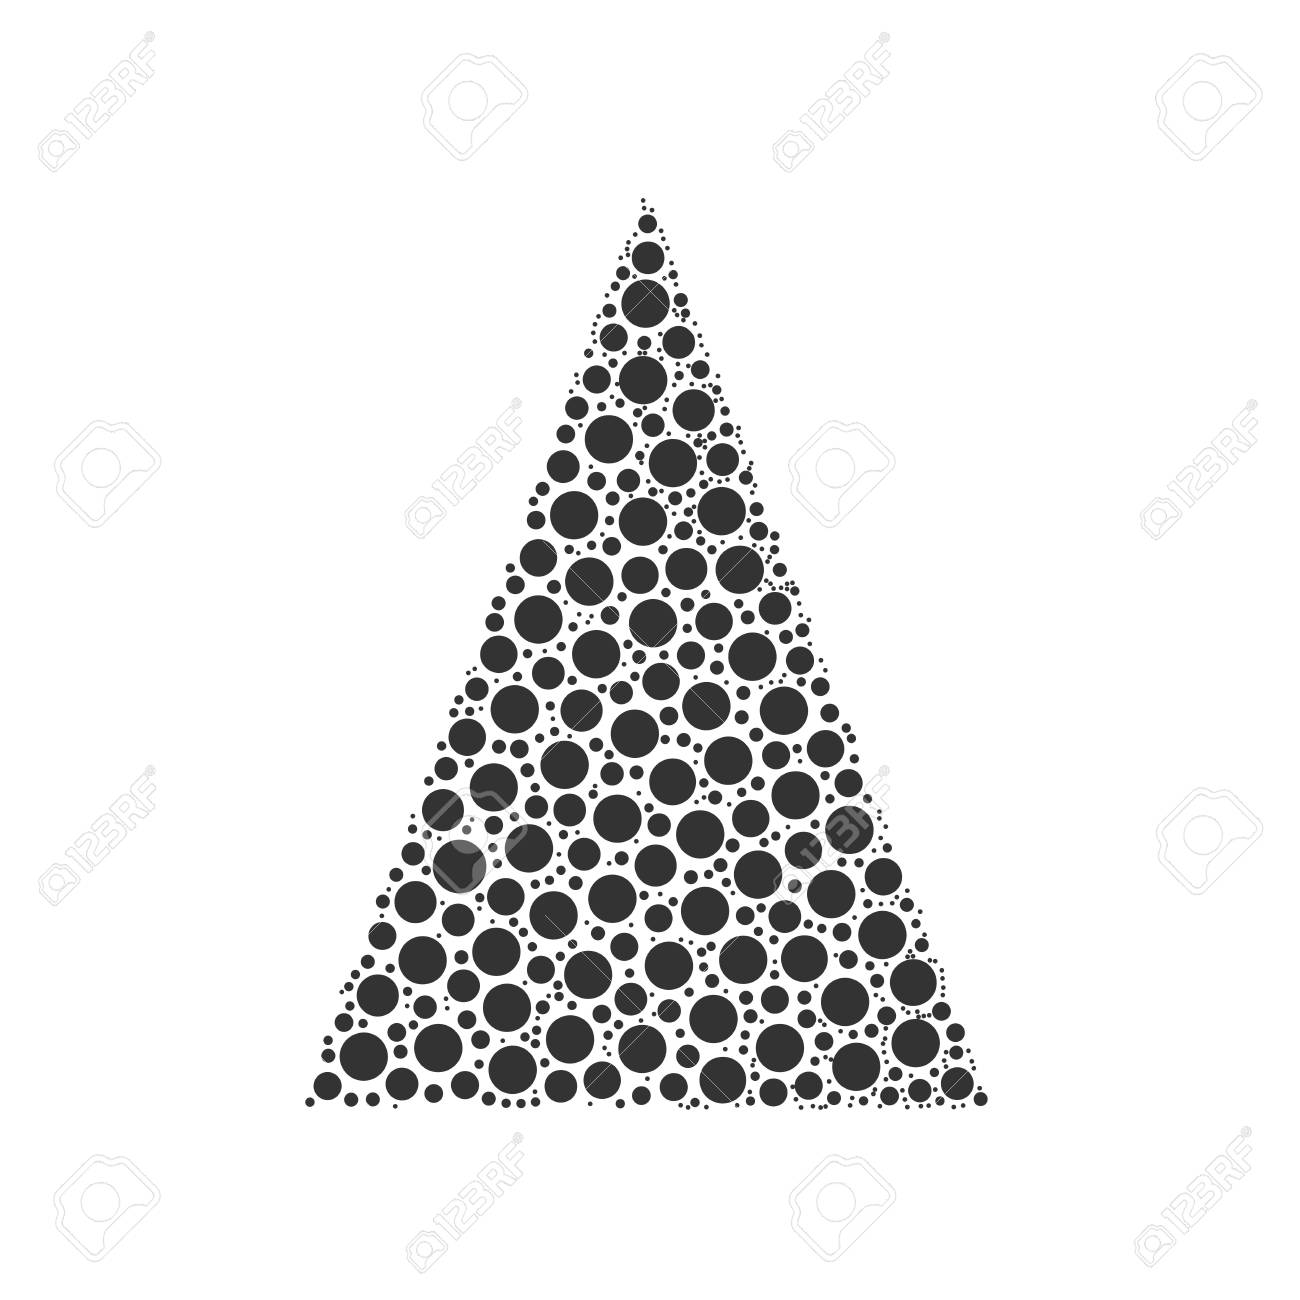 Simple Abstract Chrismas Tree Of Dots Or Circles In A Triangle Shape Black